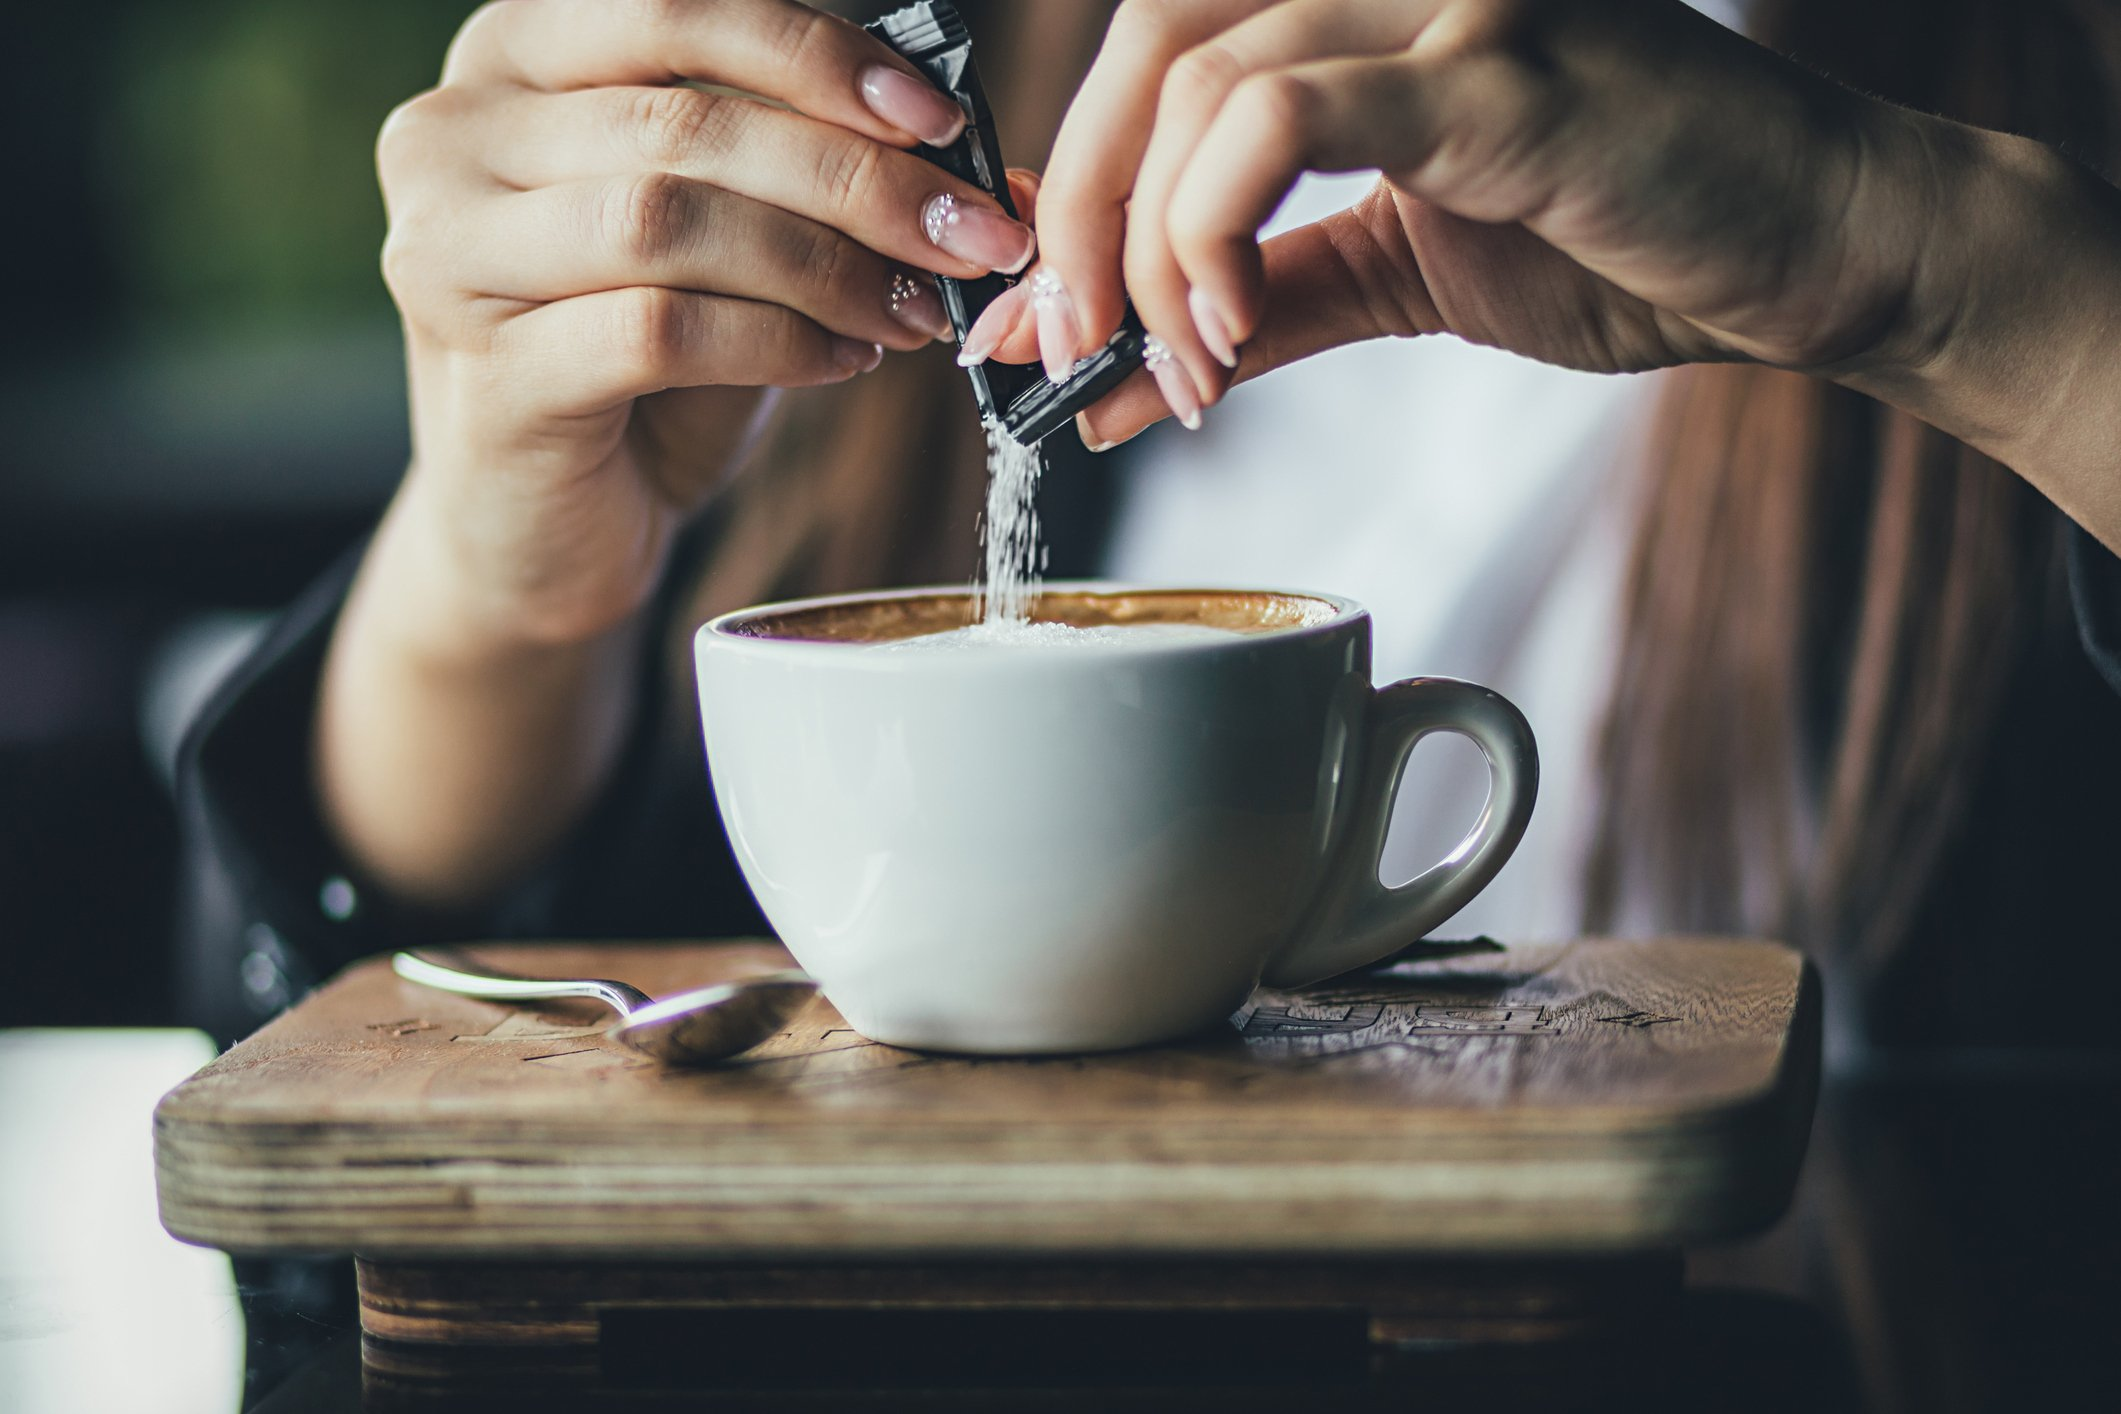 Person pours sugar into their coffee.